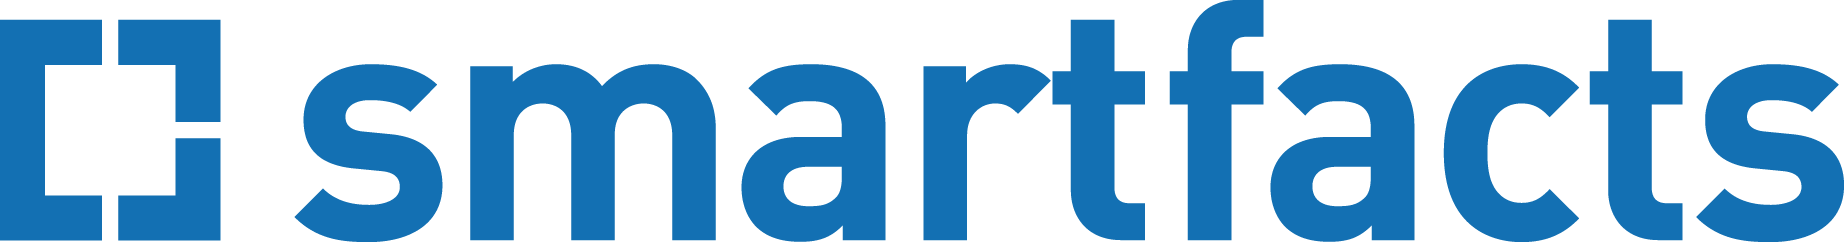 smartfacts-icon-claim-blue